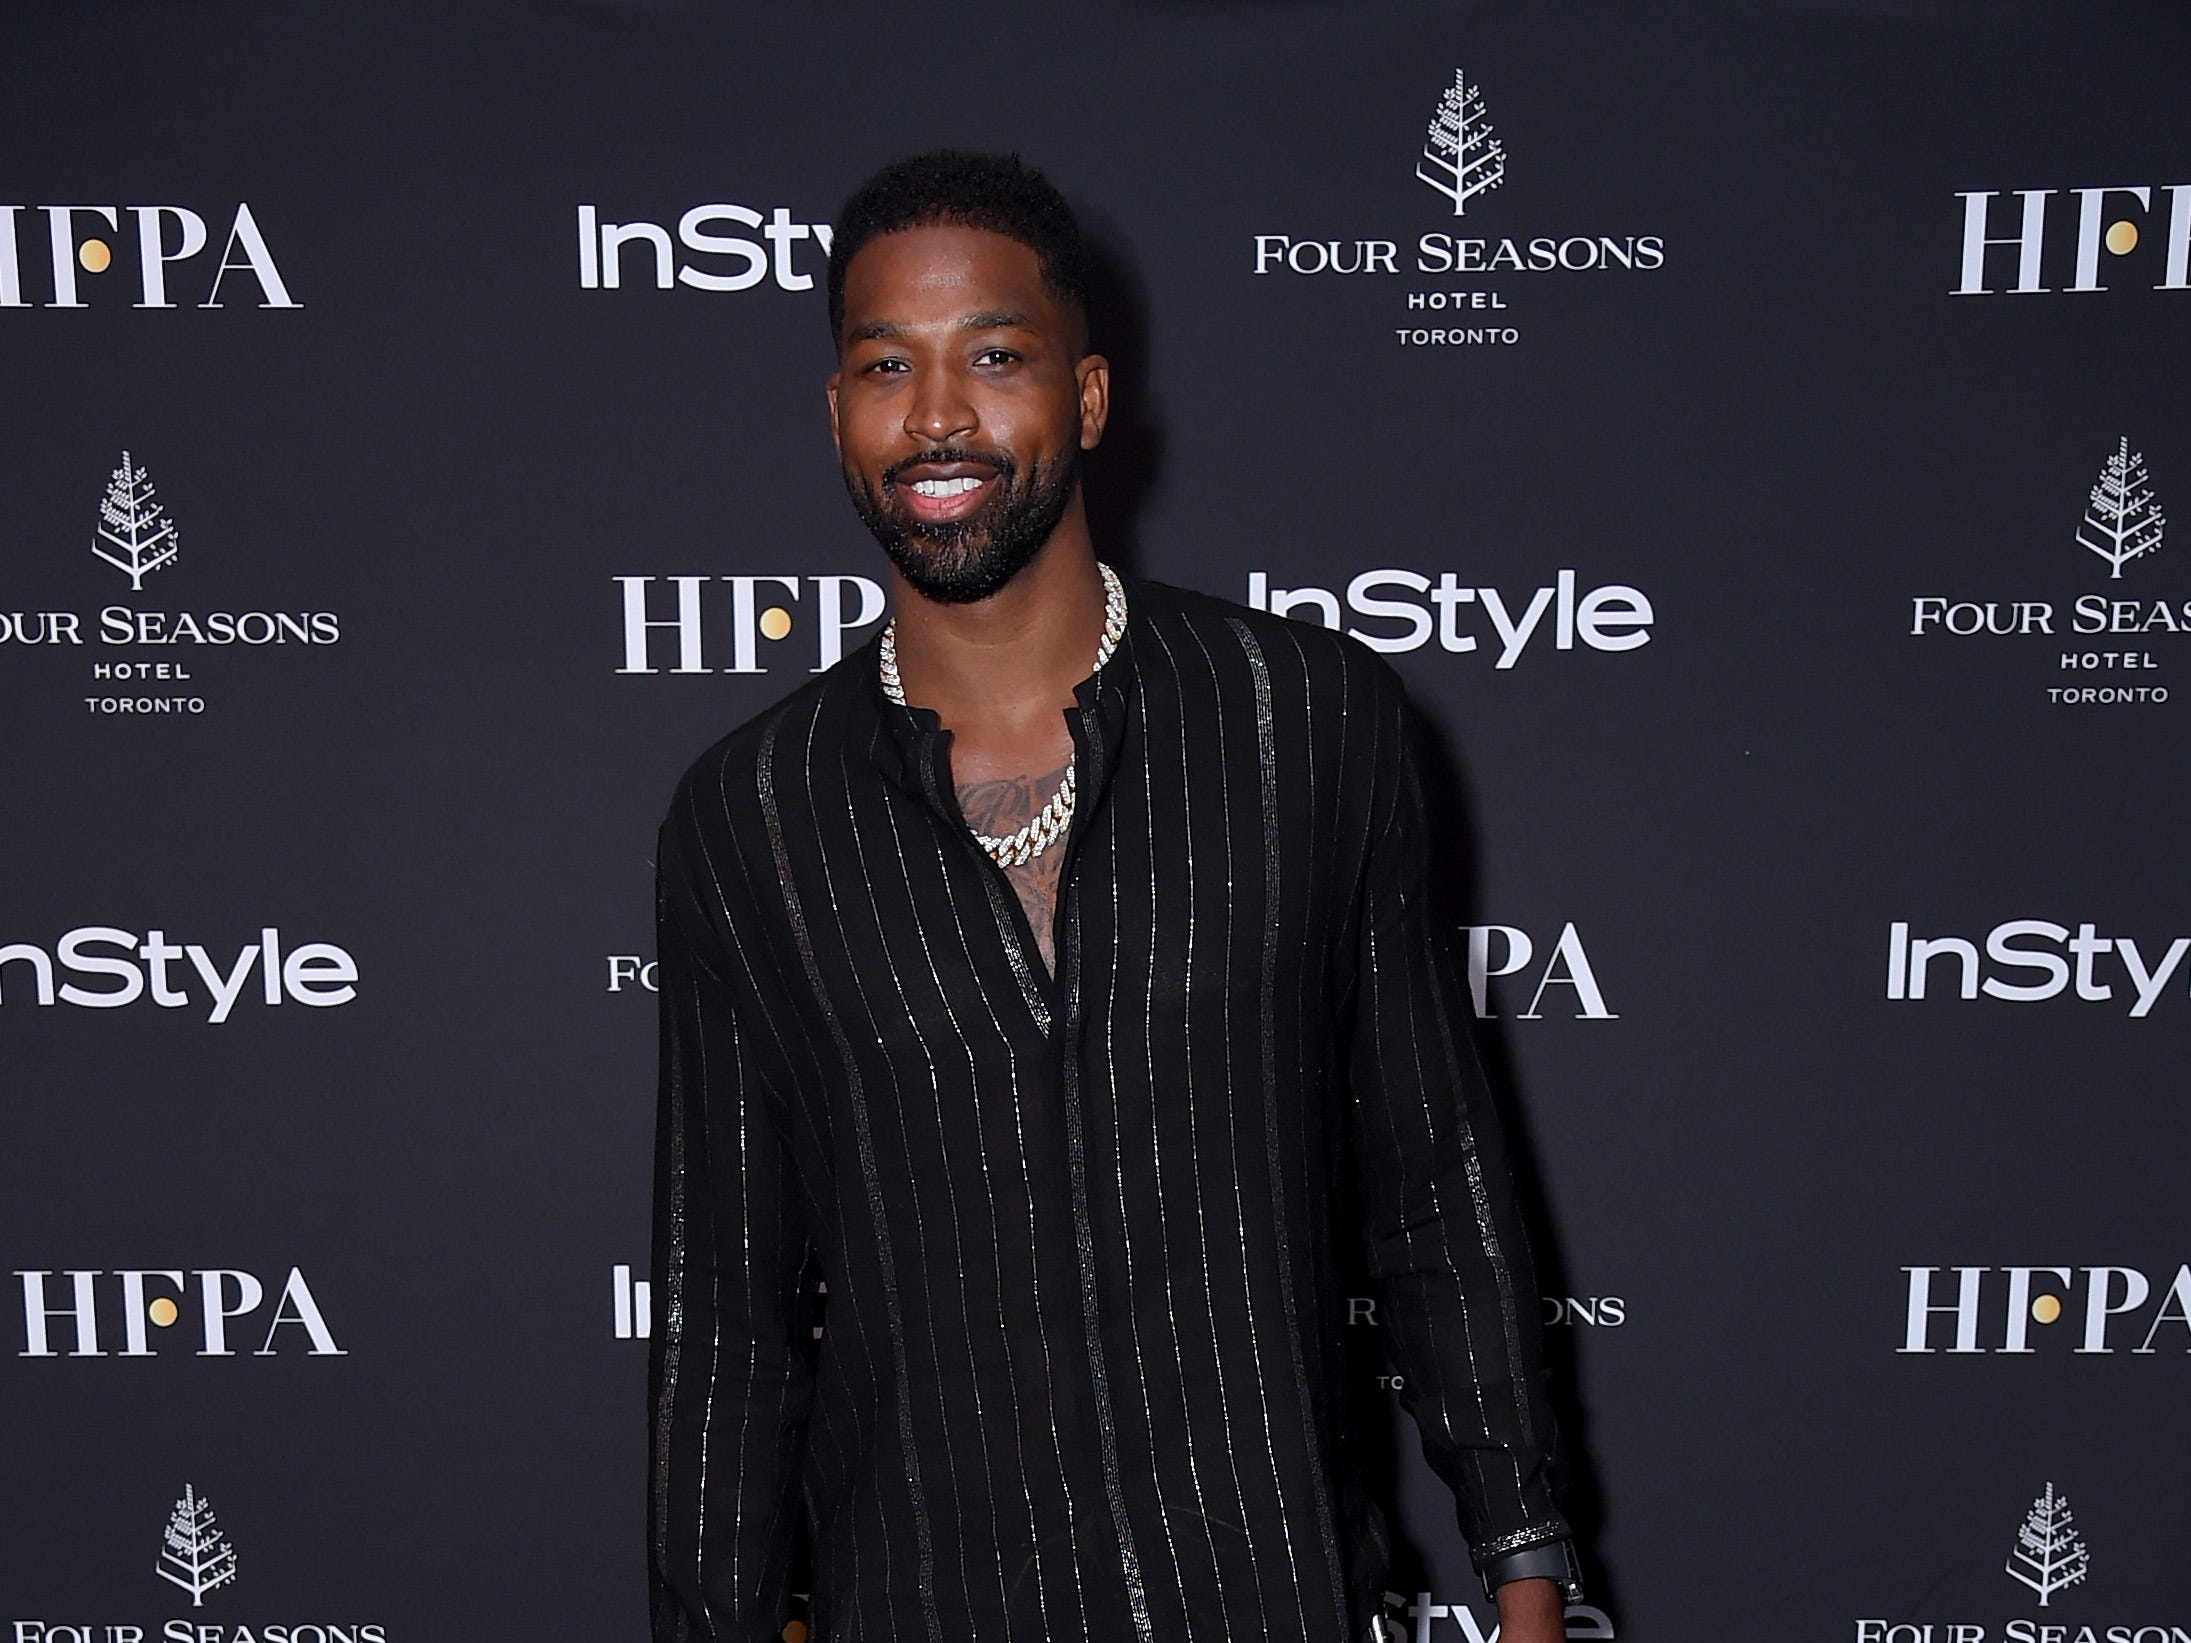 TORONTO, ON - SEPTEMBER 08:  Tristan Thompson attends The Hollywood Foreign Press Association and InStyle Party during 2018 Toronto International Film Festival at Four Seasons Hotel on September 8, 2018 in Toronto, Canada.  (Photo by Michael Loccisano/Getty Images,) ORG XMIT: 775218497 ORIG FILE ID: 1029659176